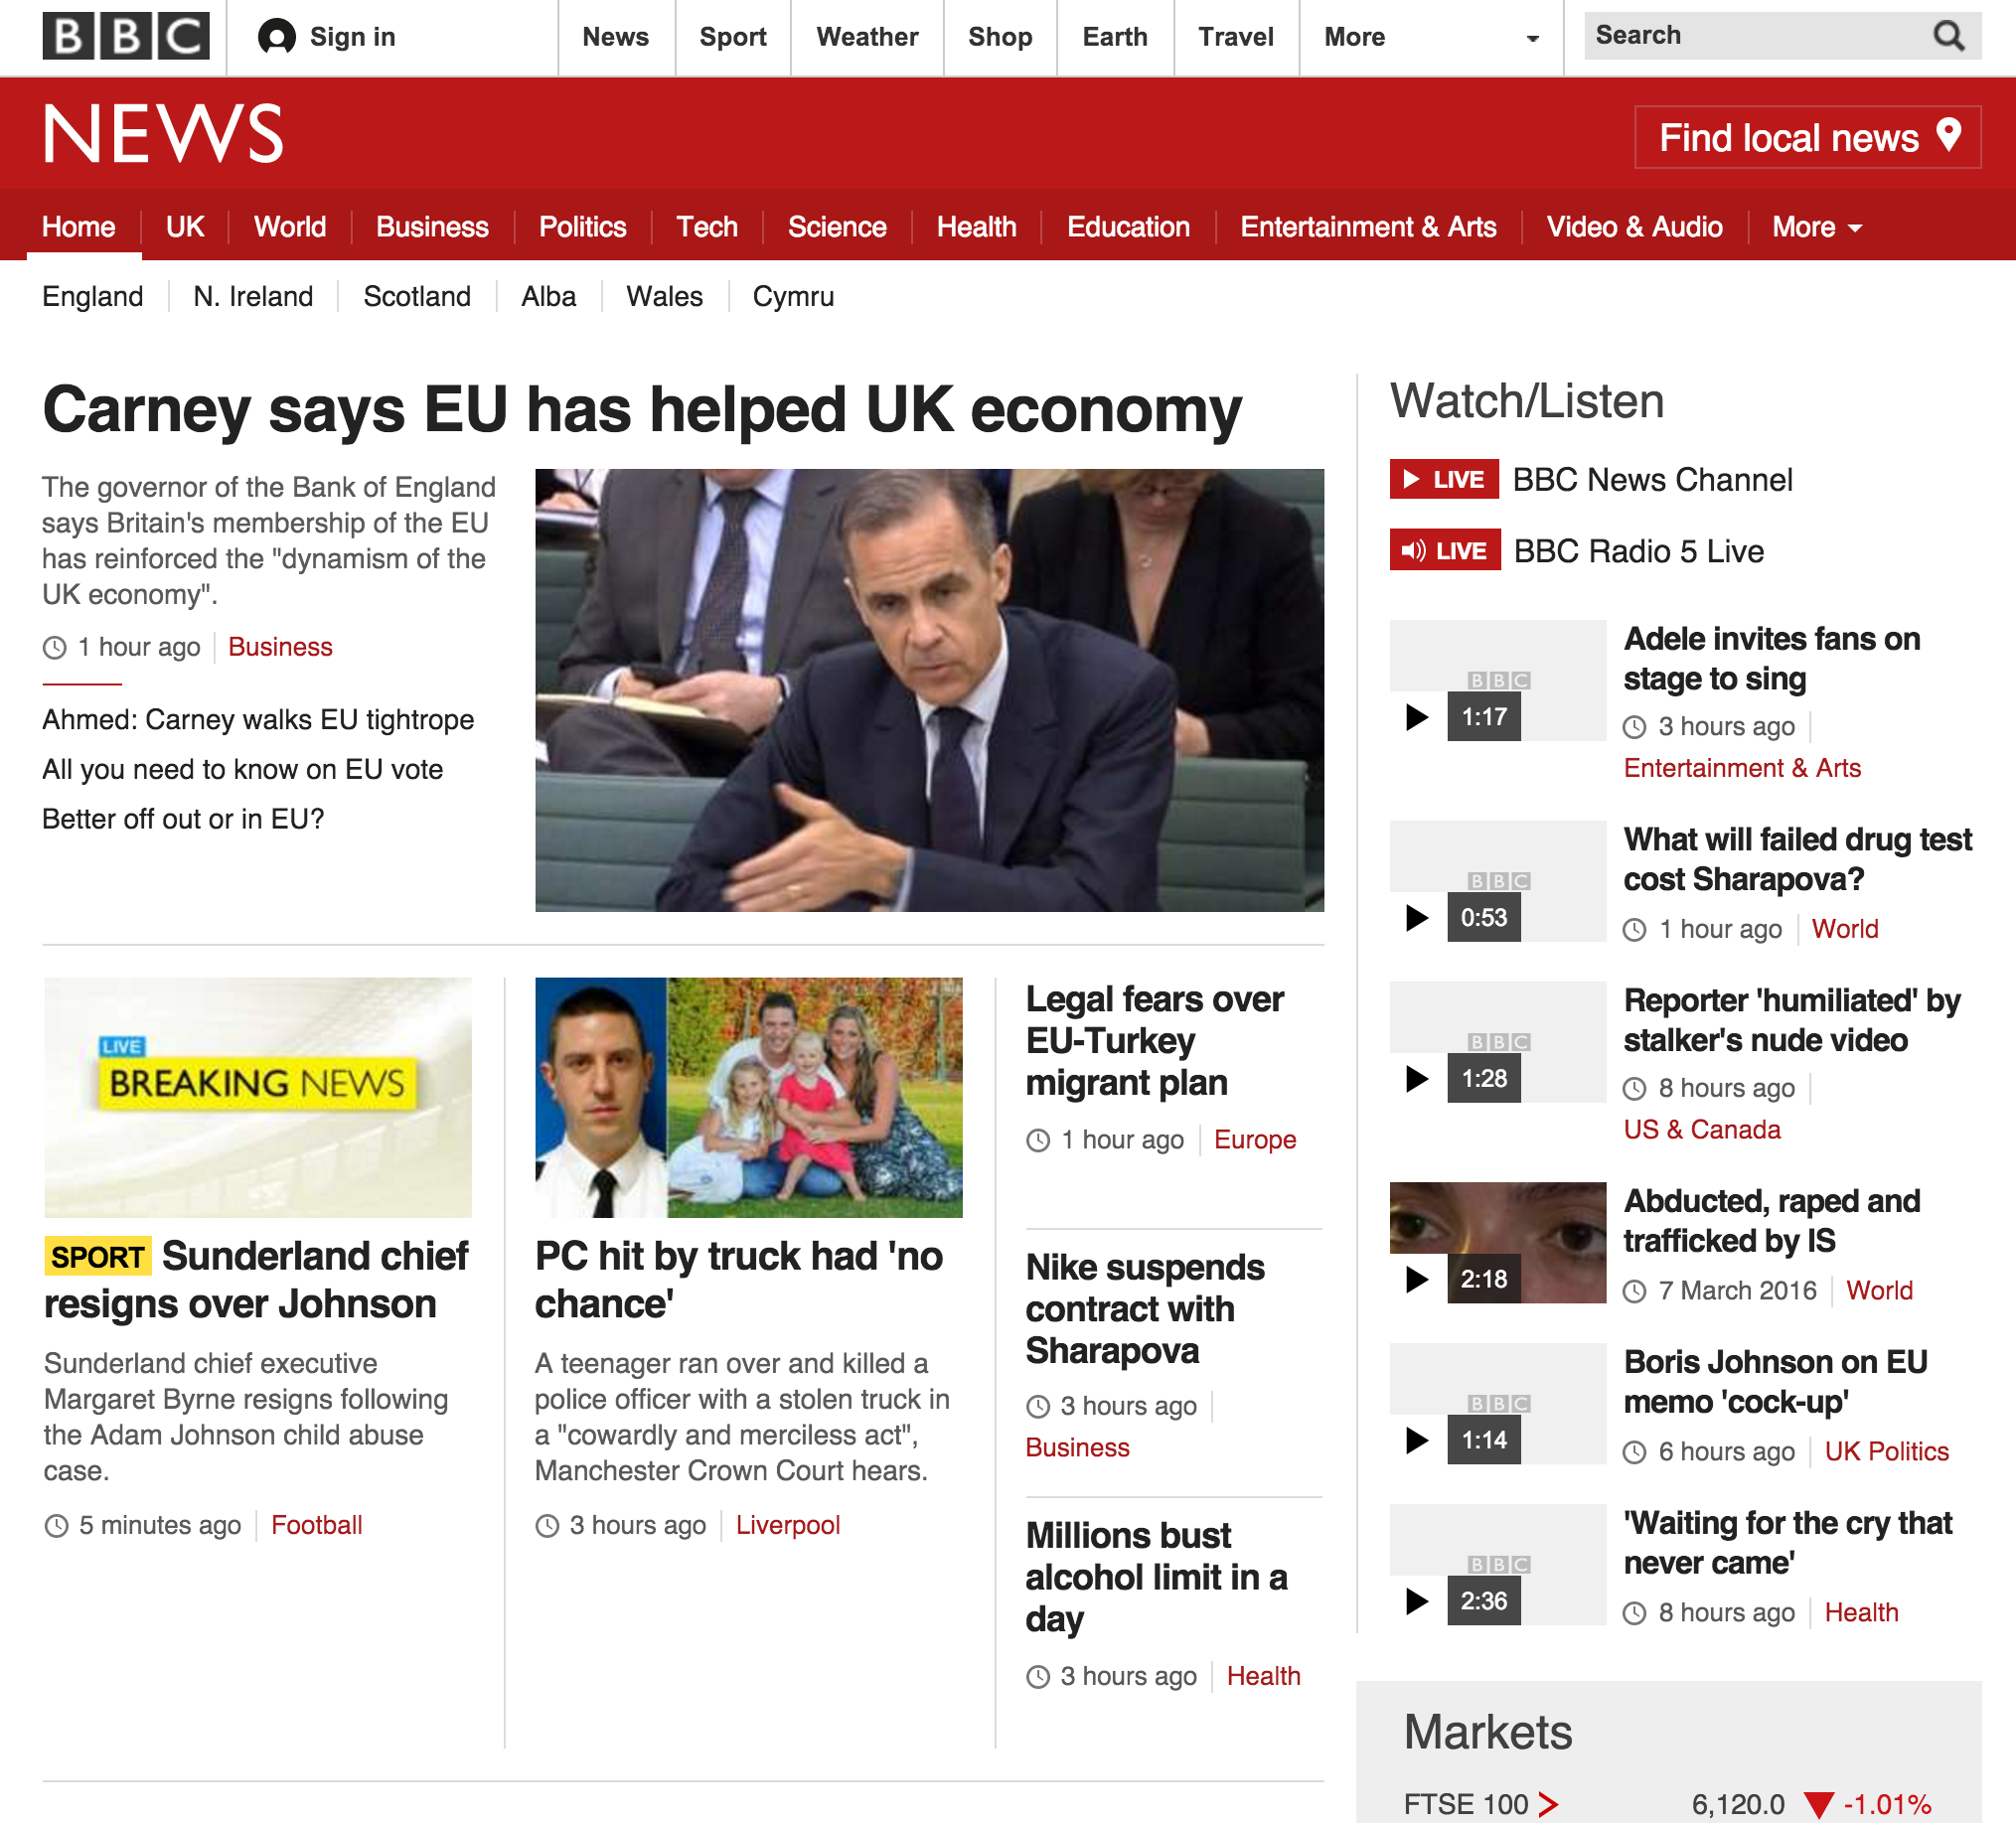 BBC News - wider but with missing images